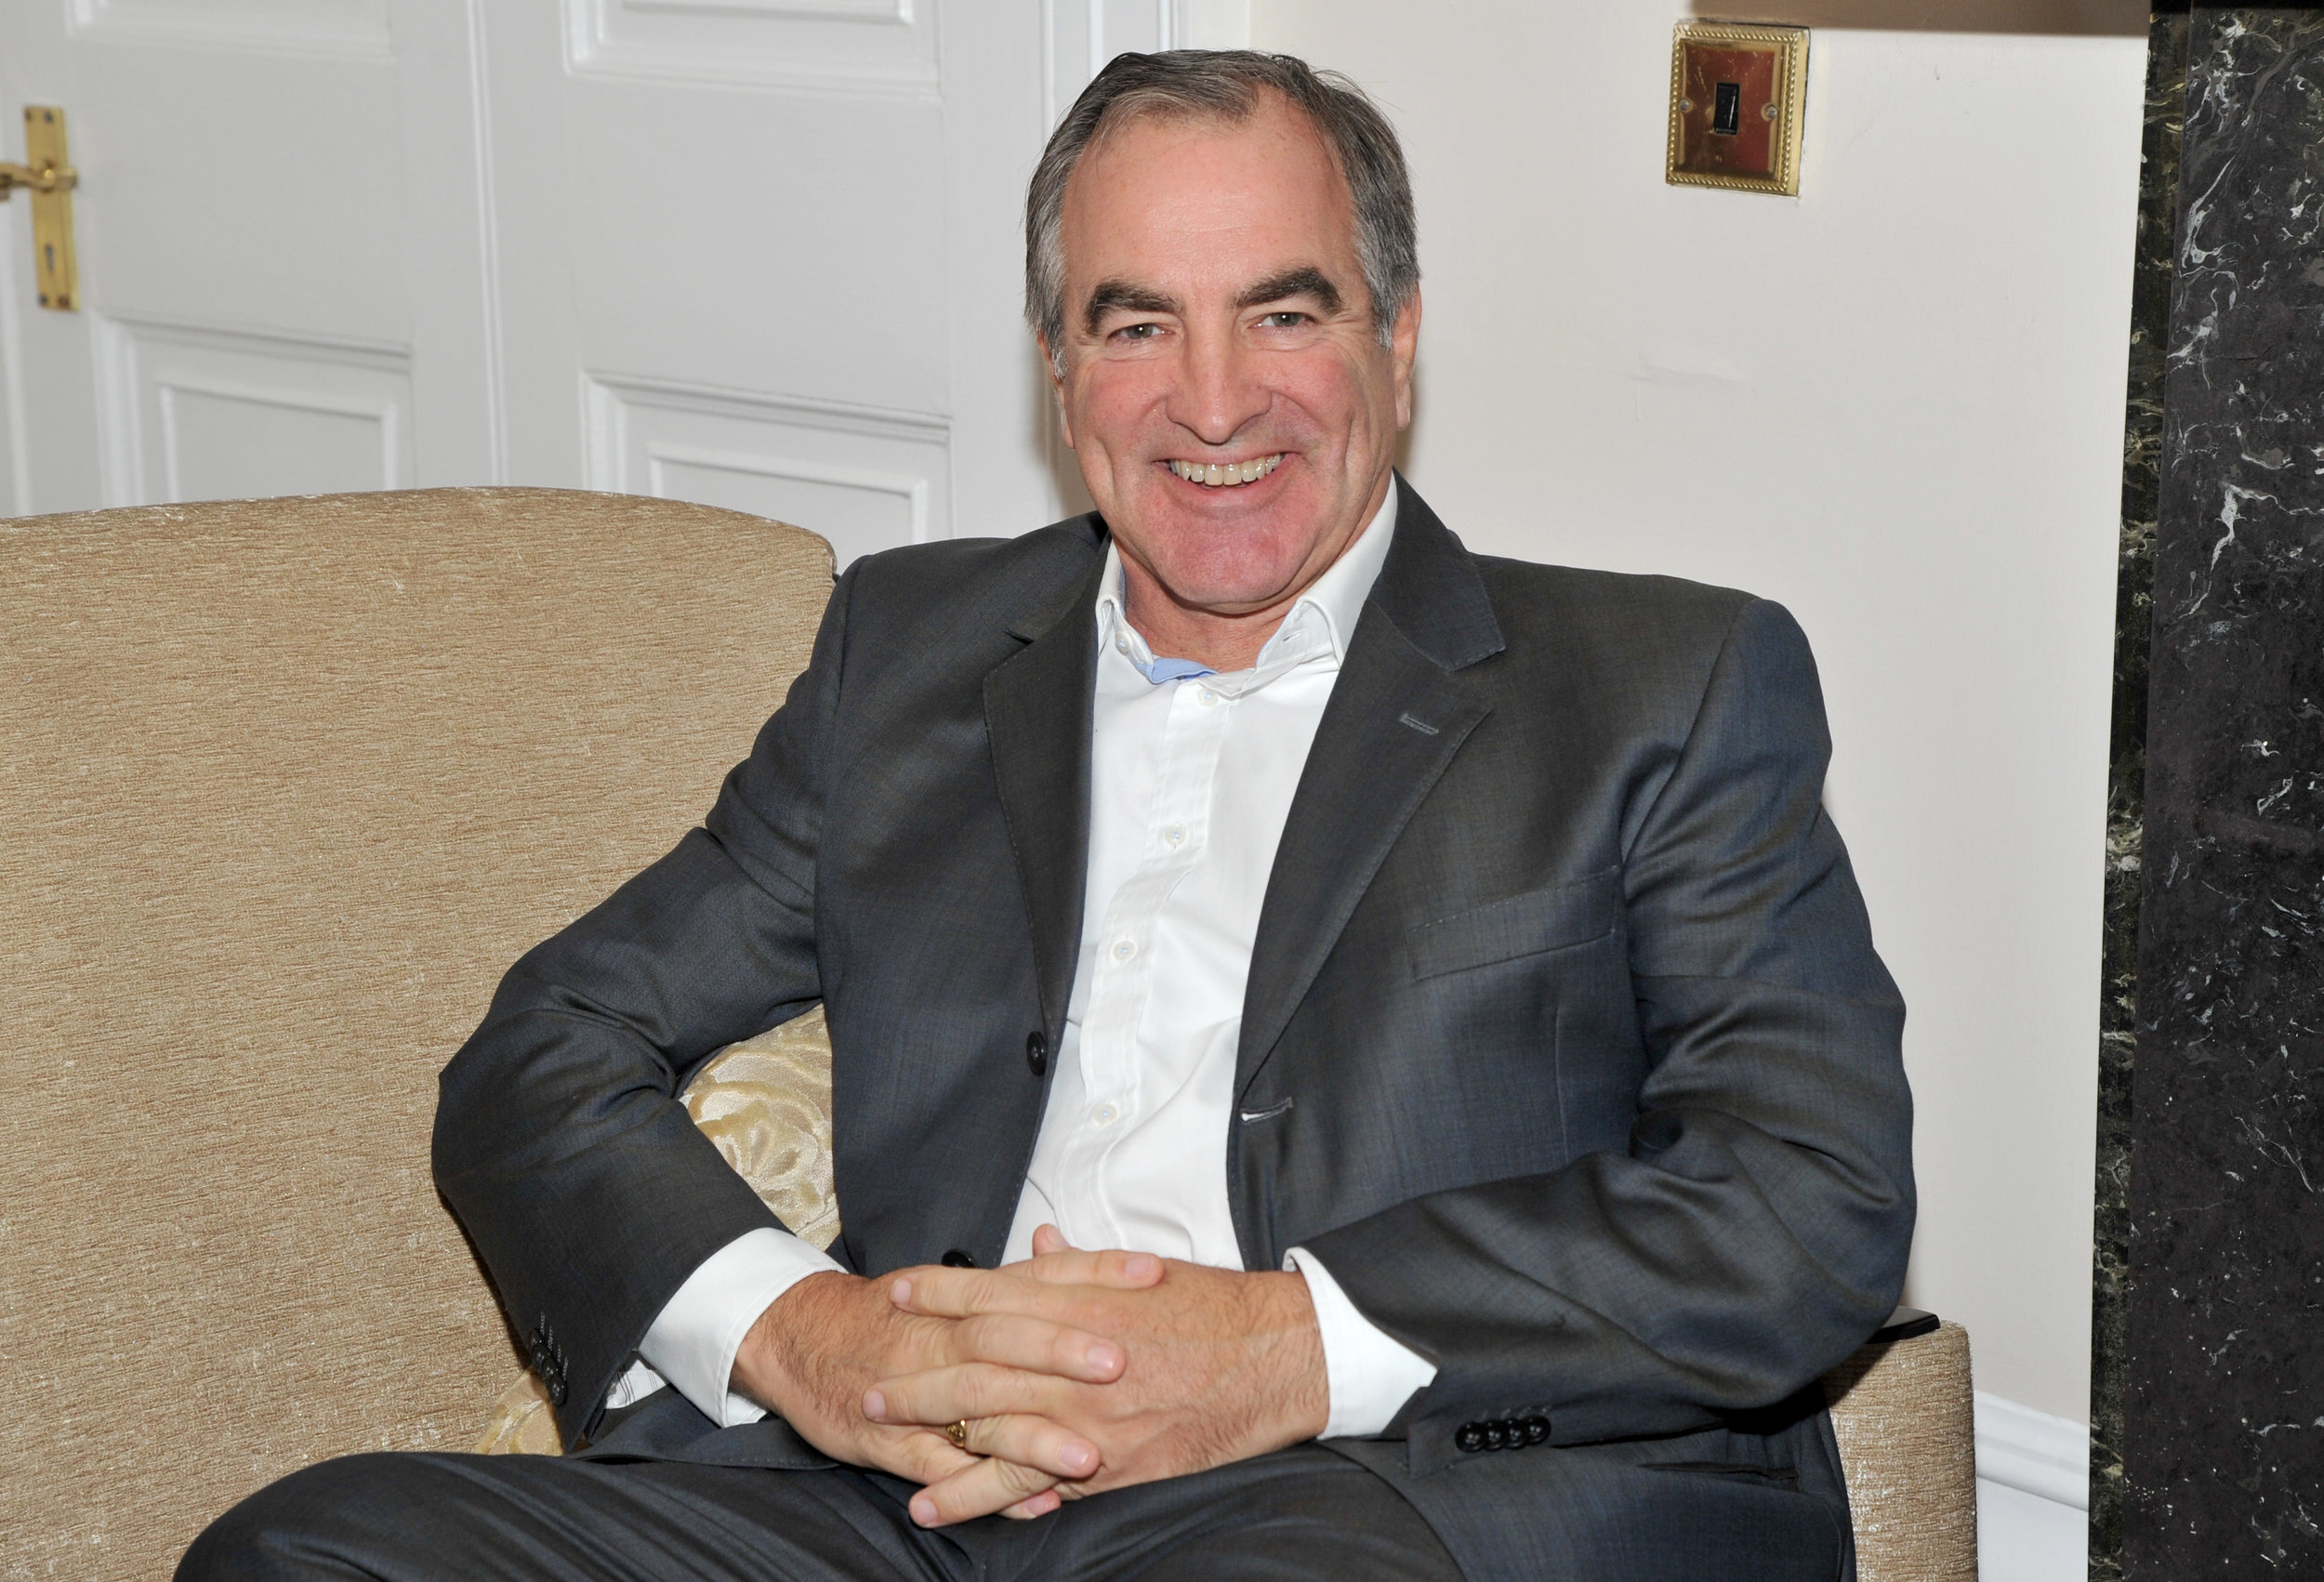 Mike Clare   A passionate serial entrepreneur, probably best known as the previous Chairman and CEO of Dreams Plc which he founded in 1987 growing it to over 200 superstores before successfully selling out in March 2008.  Mike is heavily involved in the local community helping and mentoring local businesses and entrepreneurs. He is an Ambassador and Deputy-Lieutenant for Buckinghamshire, a Freeman of the City of London, as well as a winner of numerous entrepreneurial awards.  Mike is also an investor in various local businesses particularly focusing on short-term business loans (STABLE Loans) and he is currently involved in start-up businesses in the property and retail sectors. He currently runs Clarenco LLP which owns several properties including Solent Forts, a high-end boutique hotel group consisting of three Napoleonic Sea Forts in the Solent.